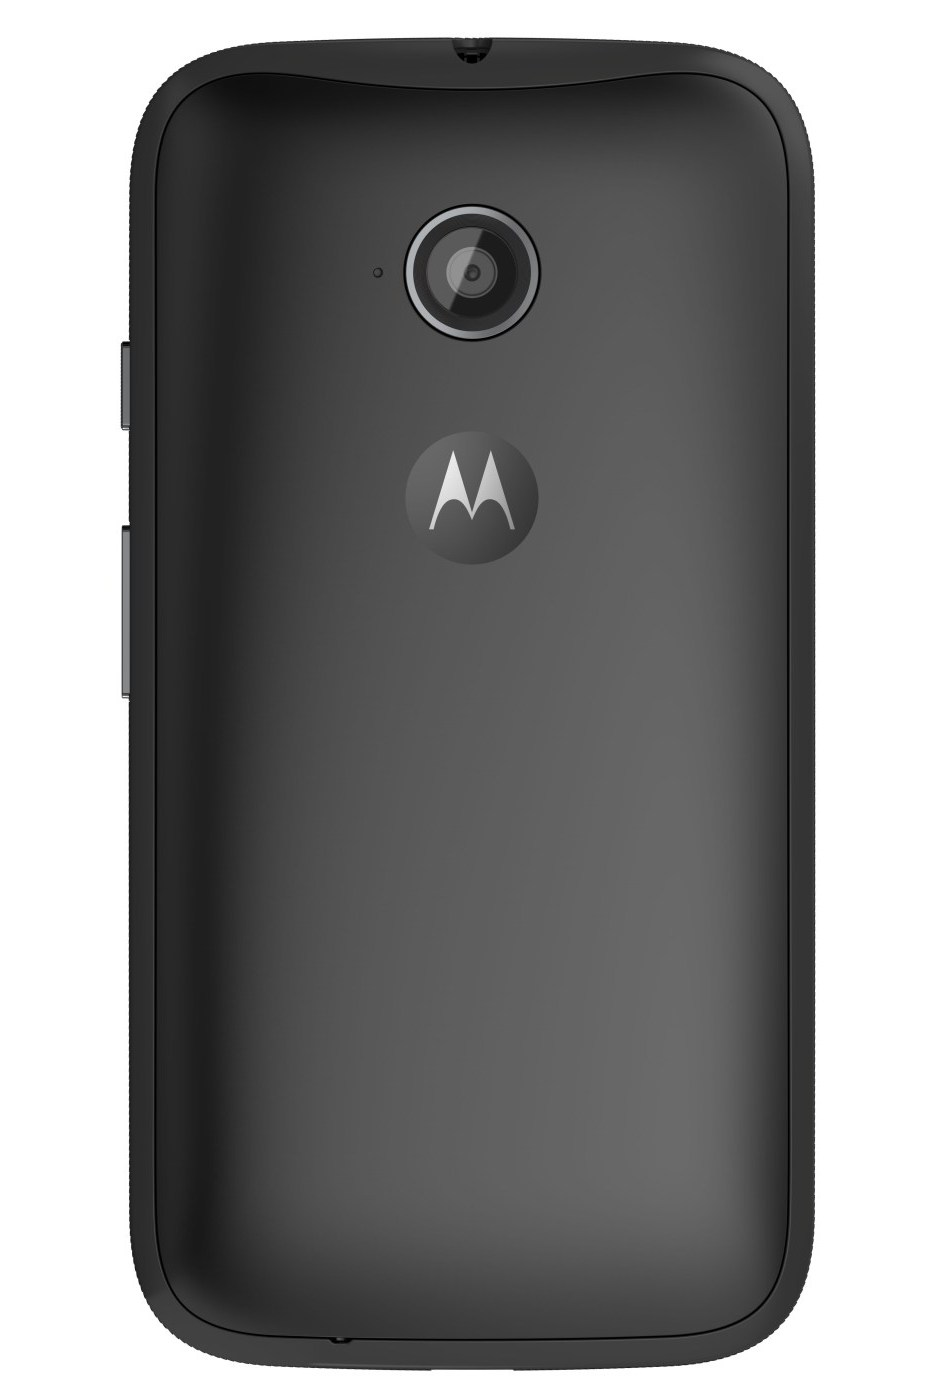 moto-e-2nd-gen-black-back-of-device